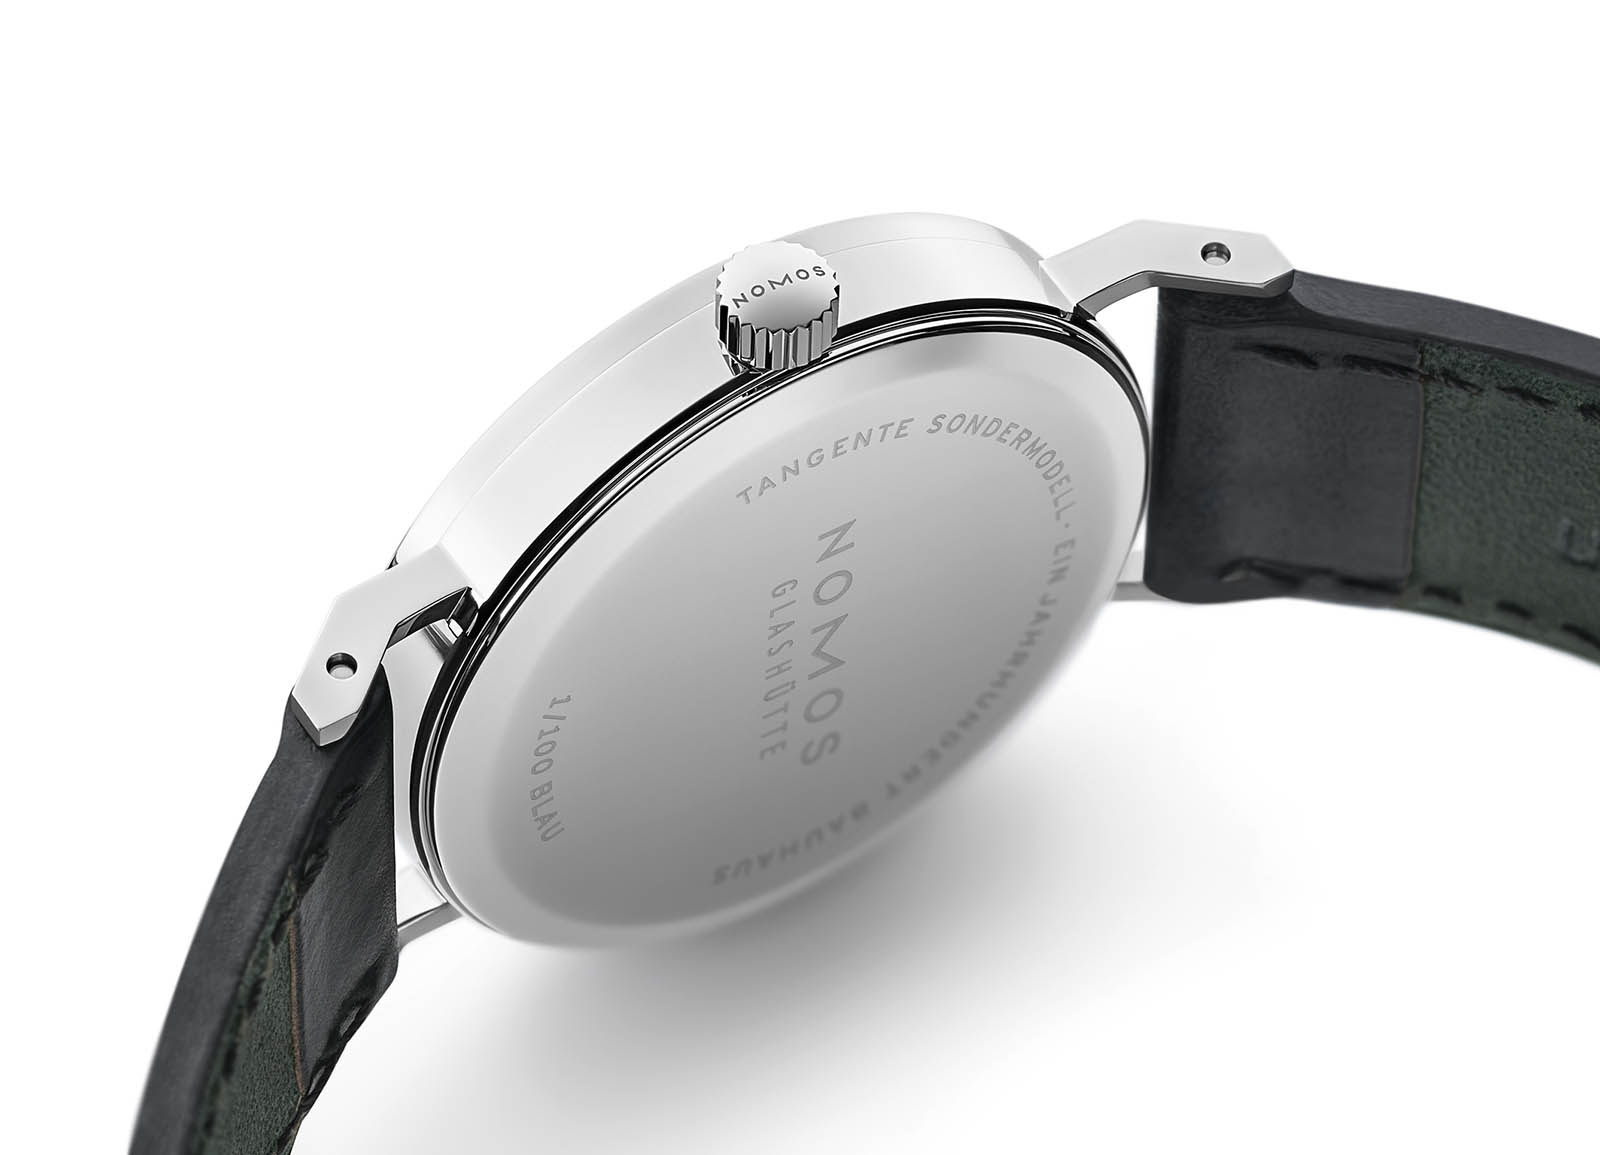 Nomos Tangente 'A Century of Bauhaus' Limited Edition caseback